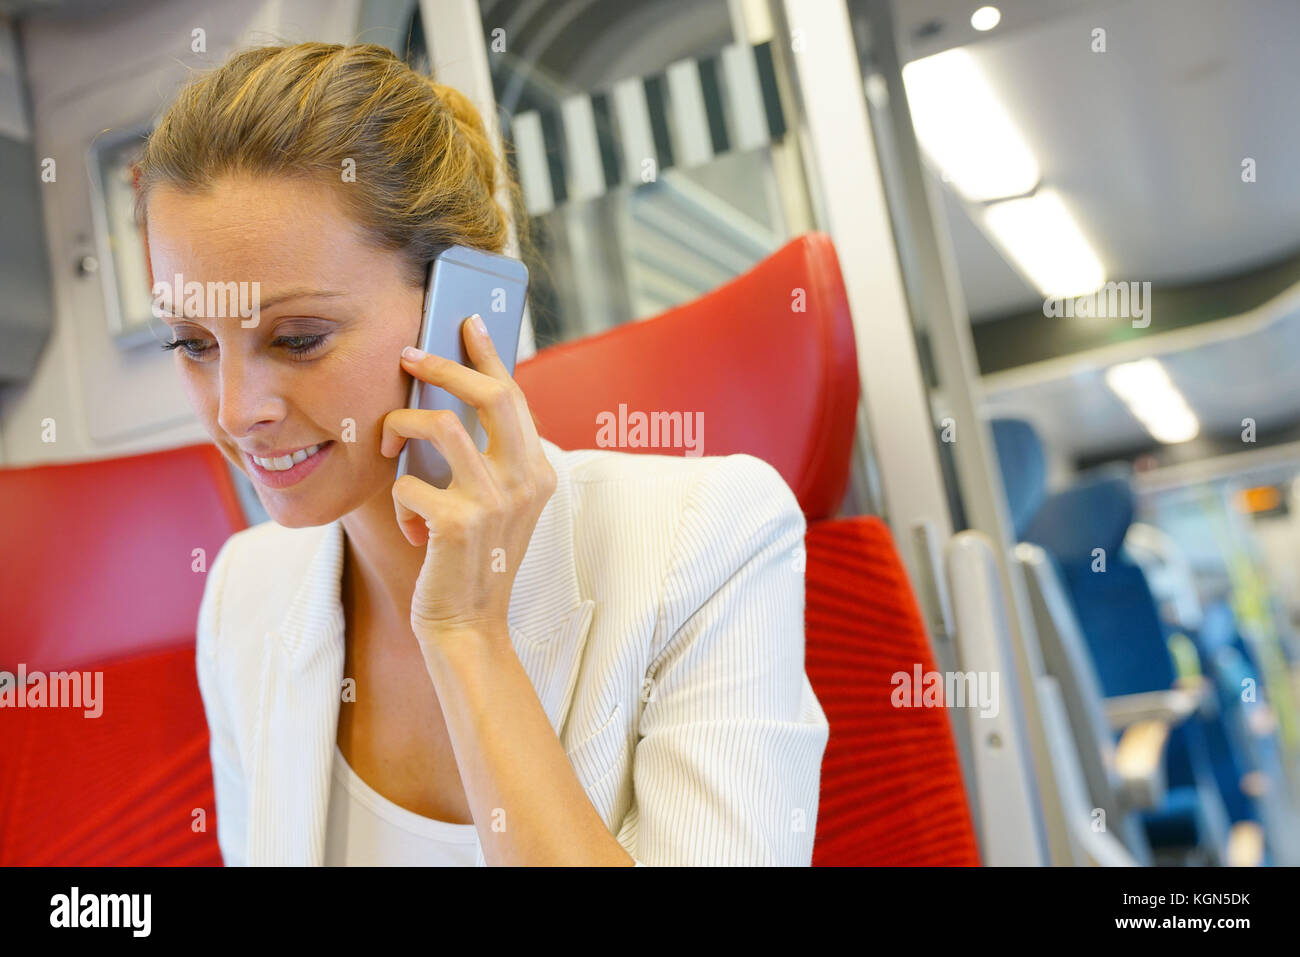 Businesswoman in train working on laptop and talking on phone - Stock Image